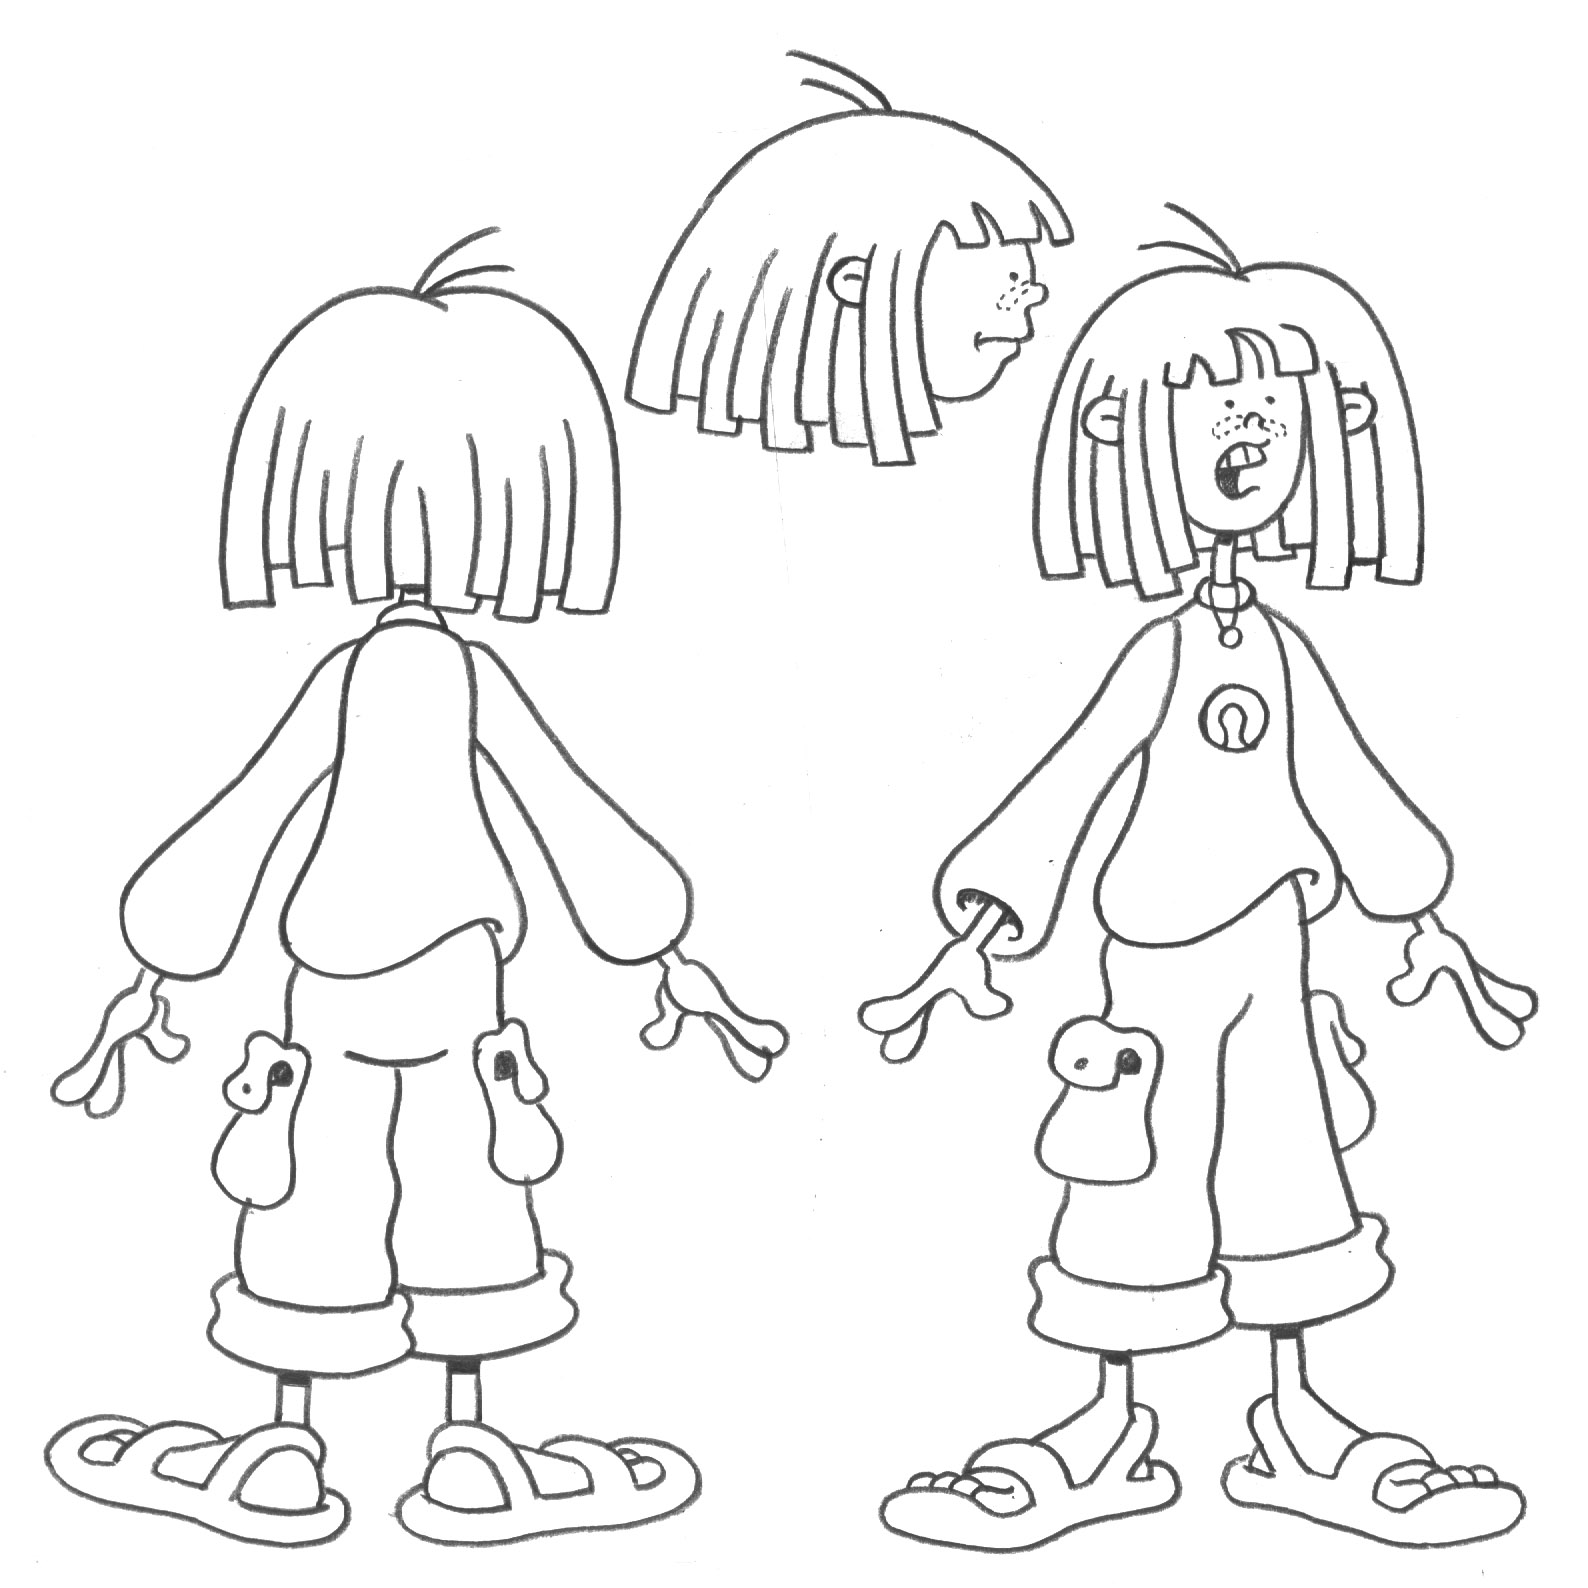 warburtonlabs the pepper ann finale character designs